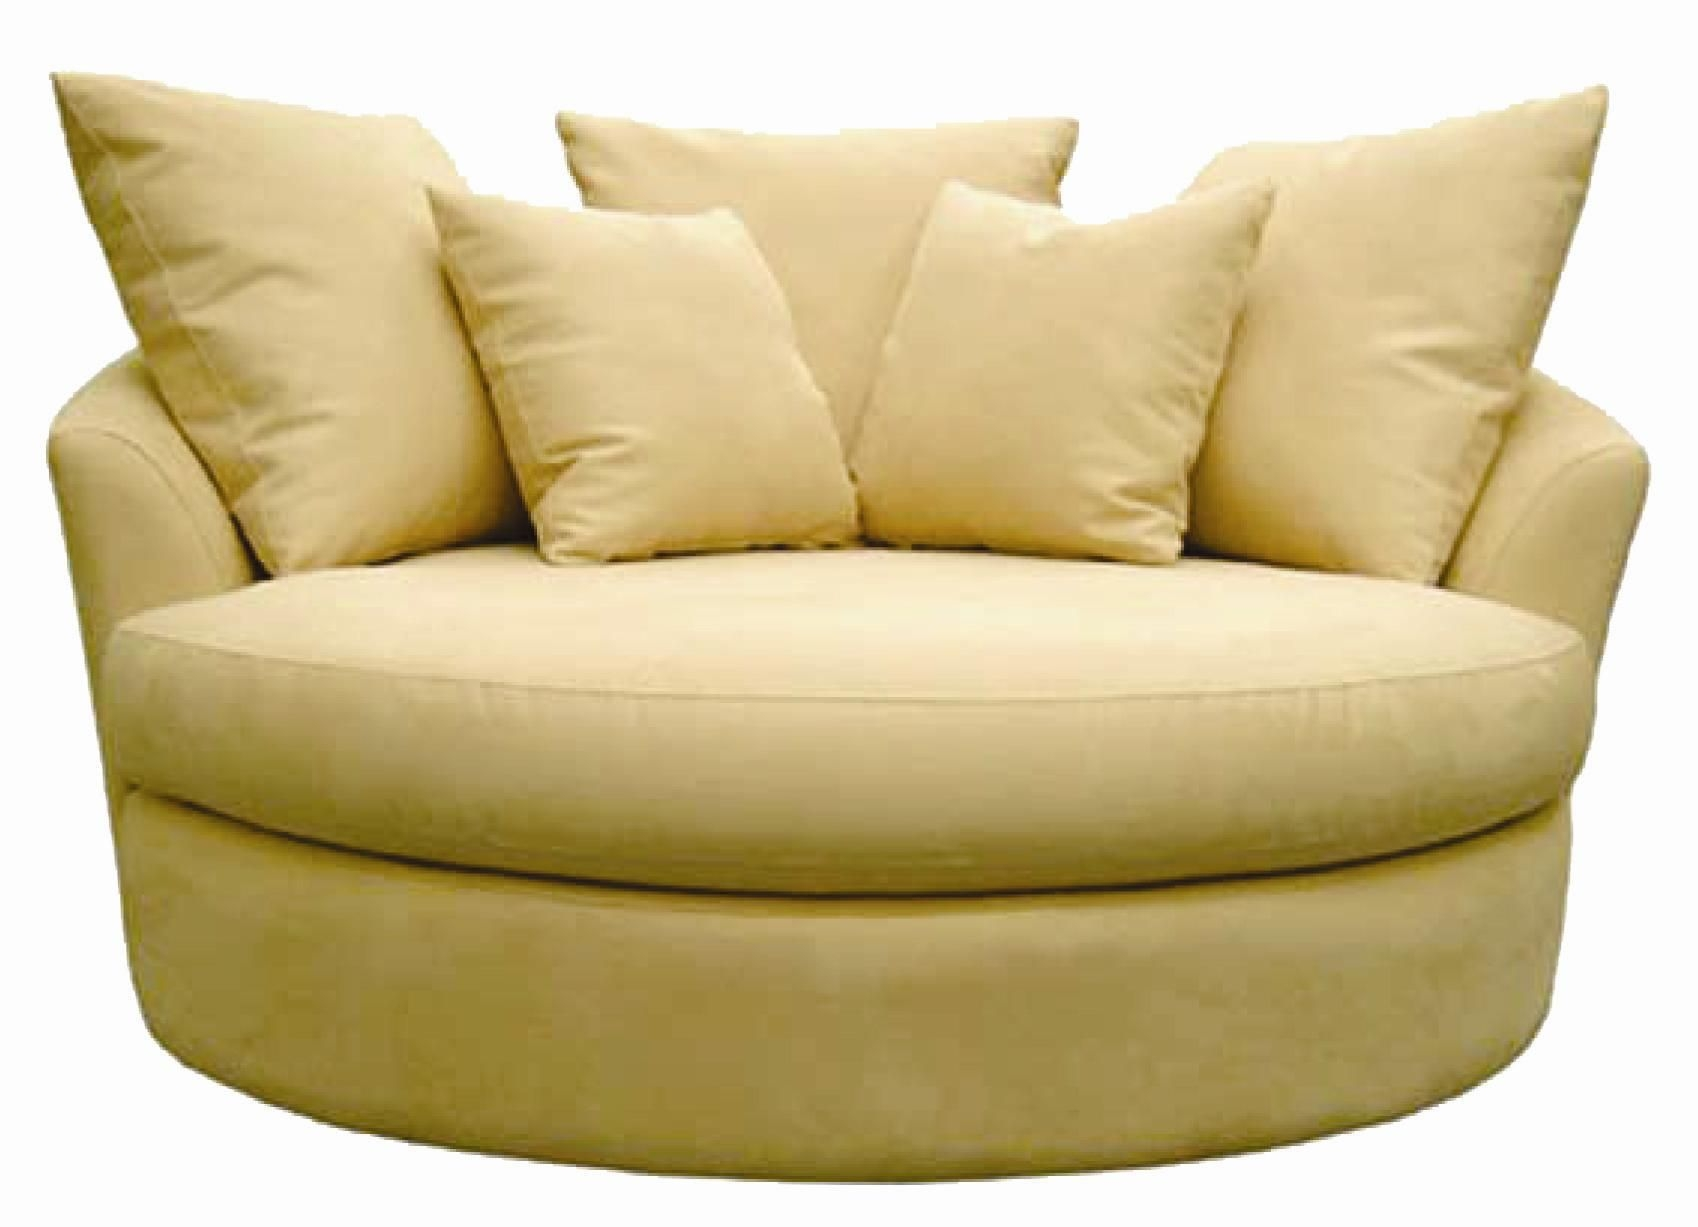 Stunning Large Sofa Chairs Photos Design Ideas Collections Regarding Oversized Sofa Chairs (Image 15 of 15)